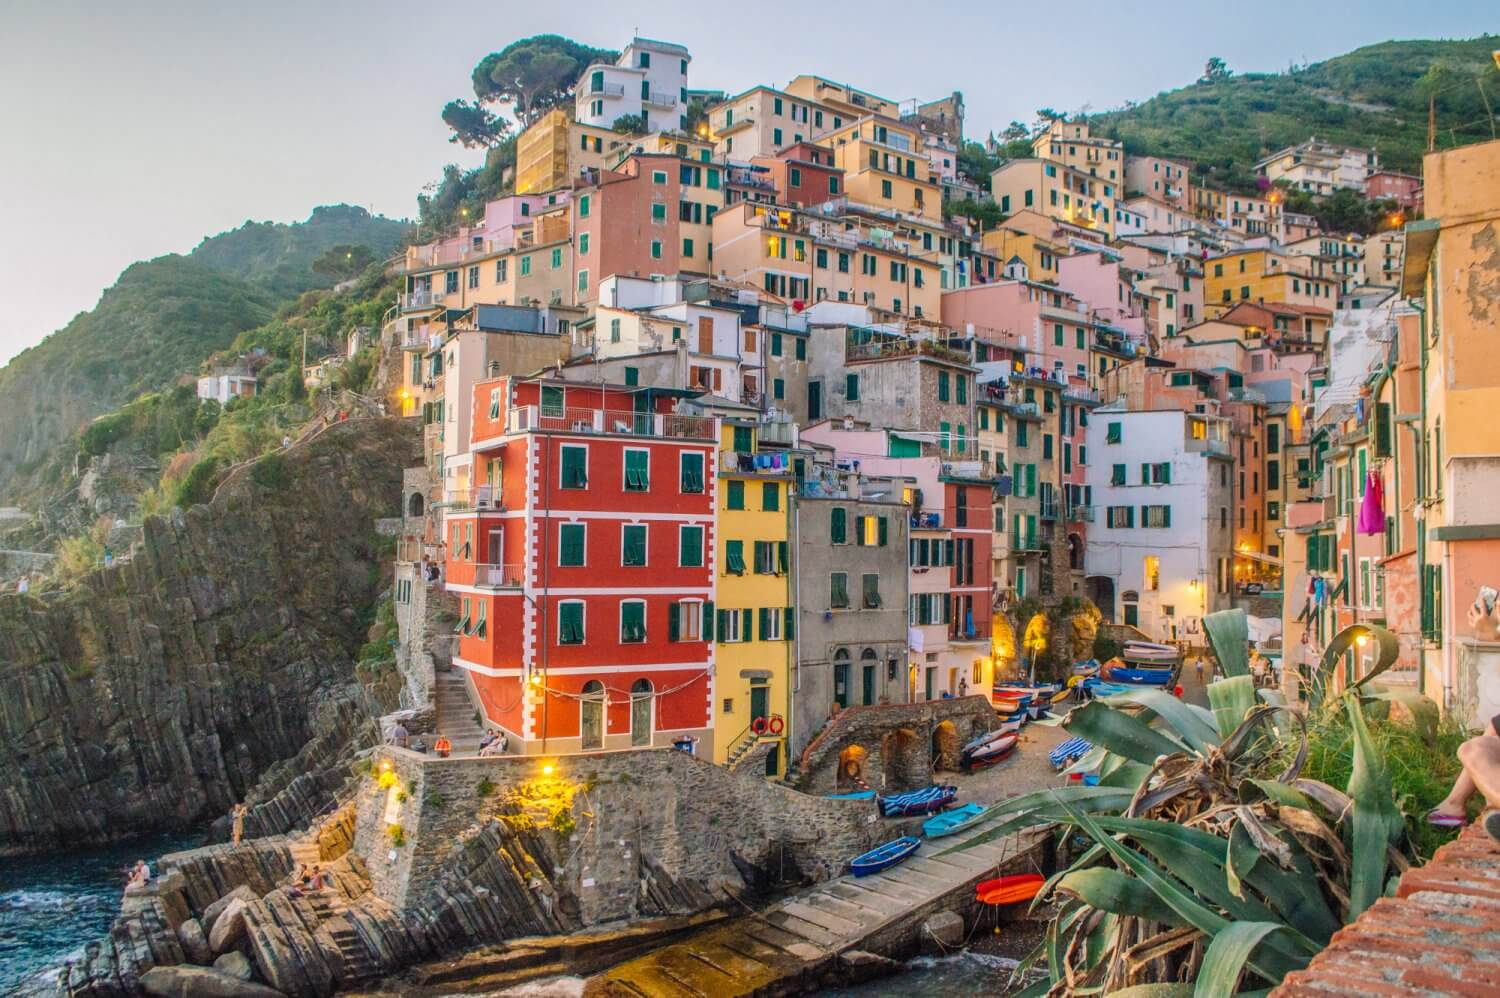 WOW - amazing photo guide to Cinque Terre, Italy, one of the most beautiful places in the world. If you are planning a trip to Italy or plan to travel to Cinque Terre, you need to see these incredible photos! #italy #cinqueterre